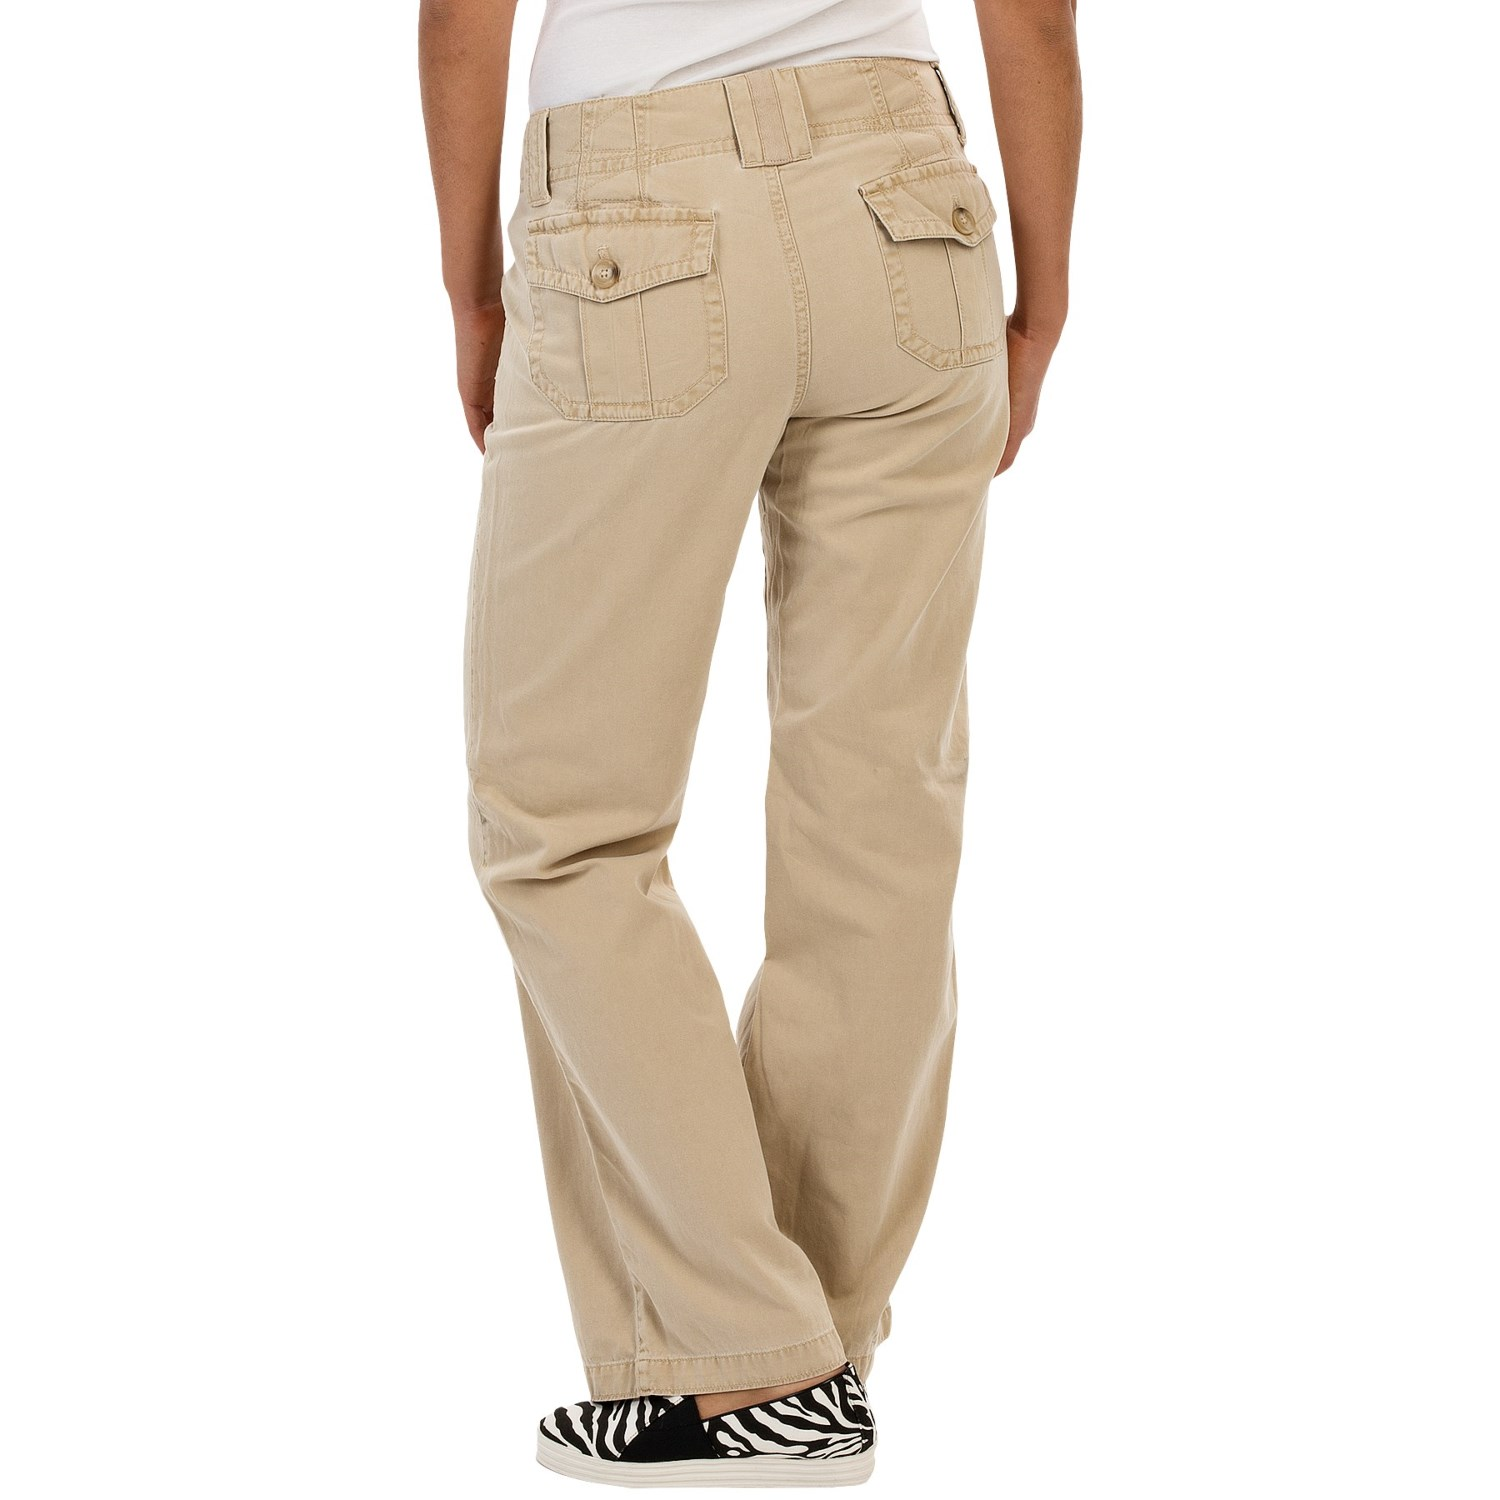 Awesome Women39s Pants  Cotton  Ripstop Cargo Pant  JCrew  Polyvore